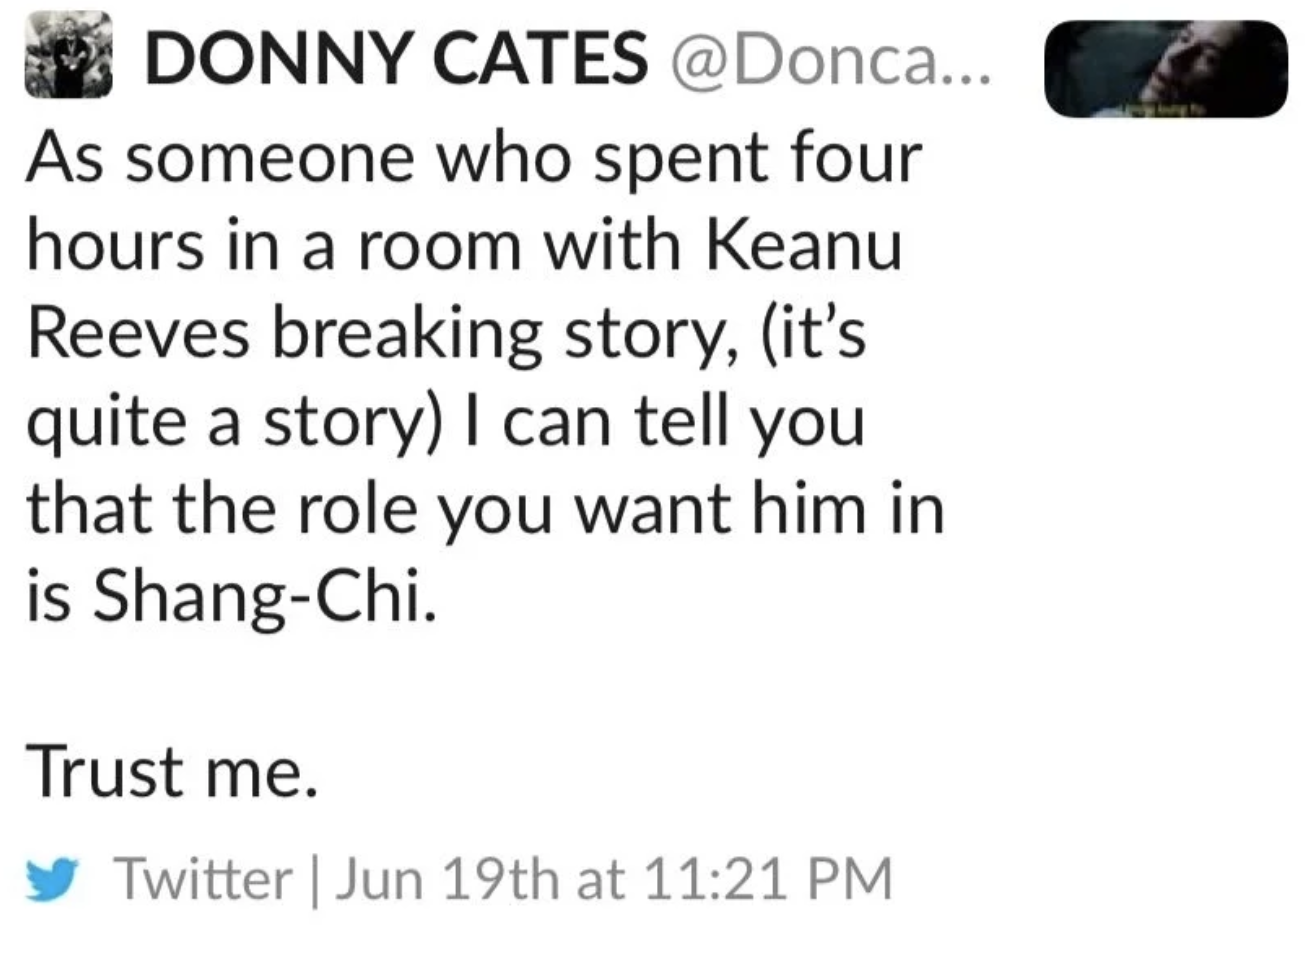 marvel-comics-writer-donny-cates-says-fans-should-want-keanu-reeves-in-the-role-of-shang-chi